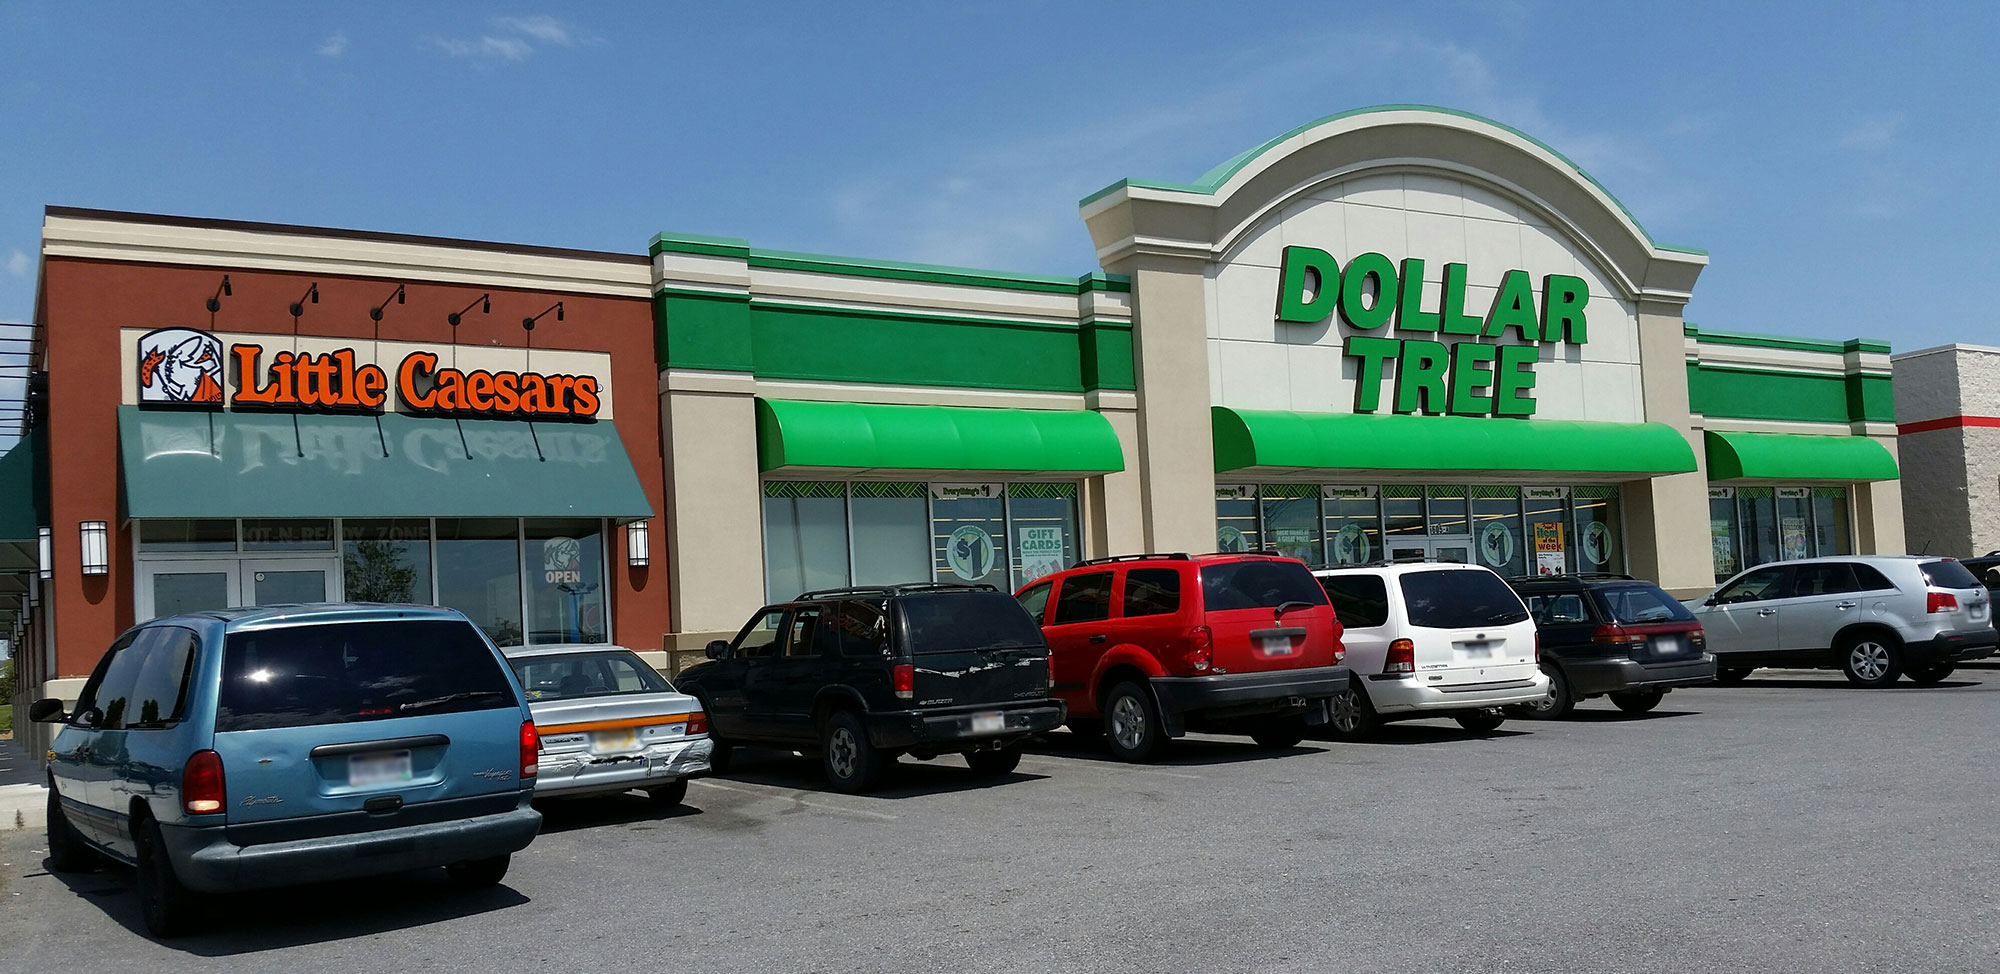 dollar-tree-slider